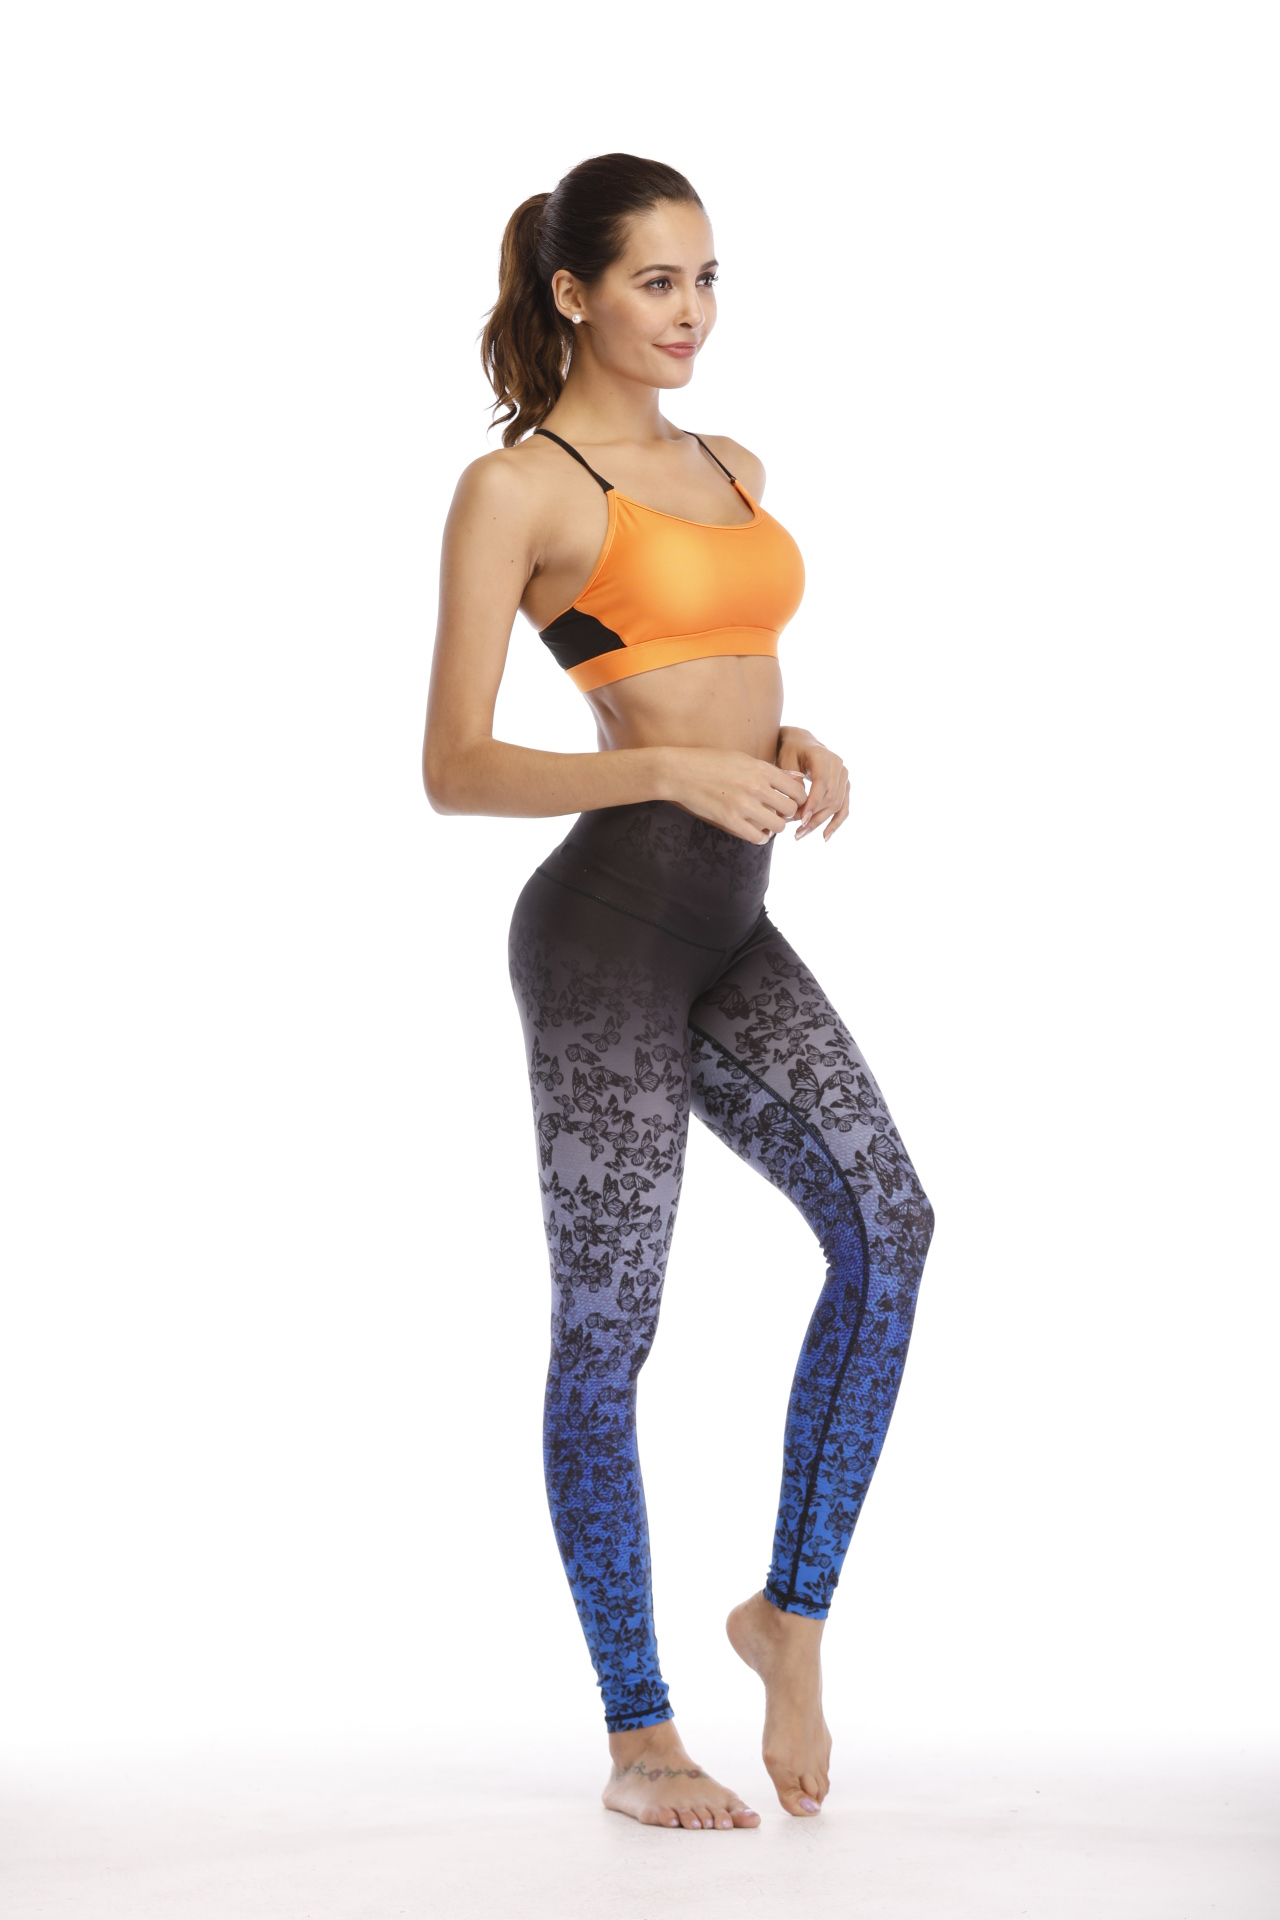 Women Sportswear Yoga Set Bra And Leggings Sublimation Print